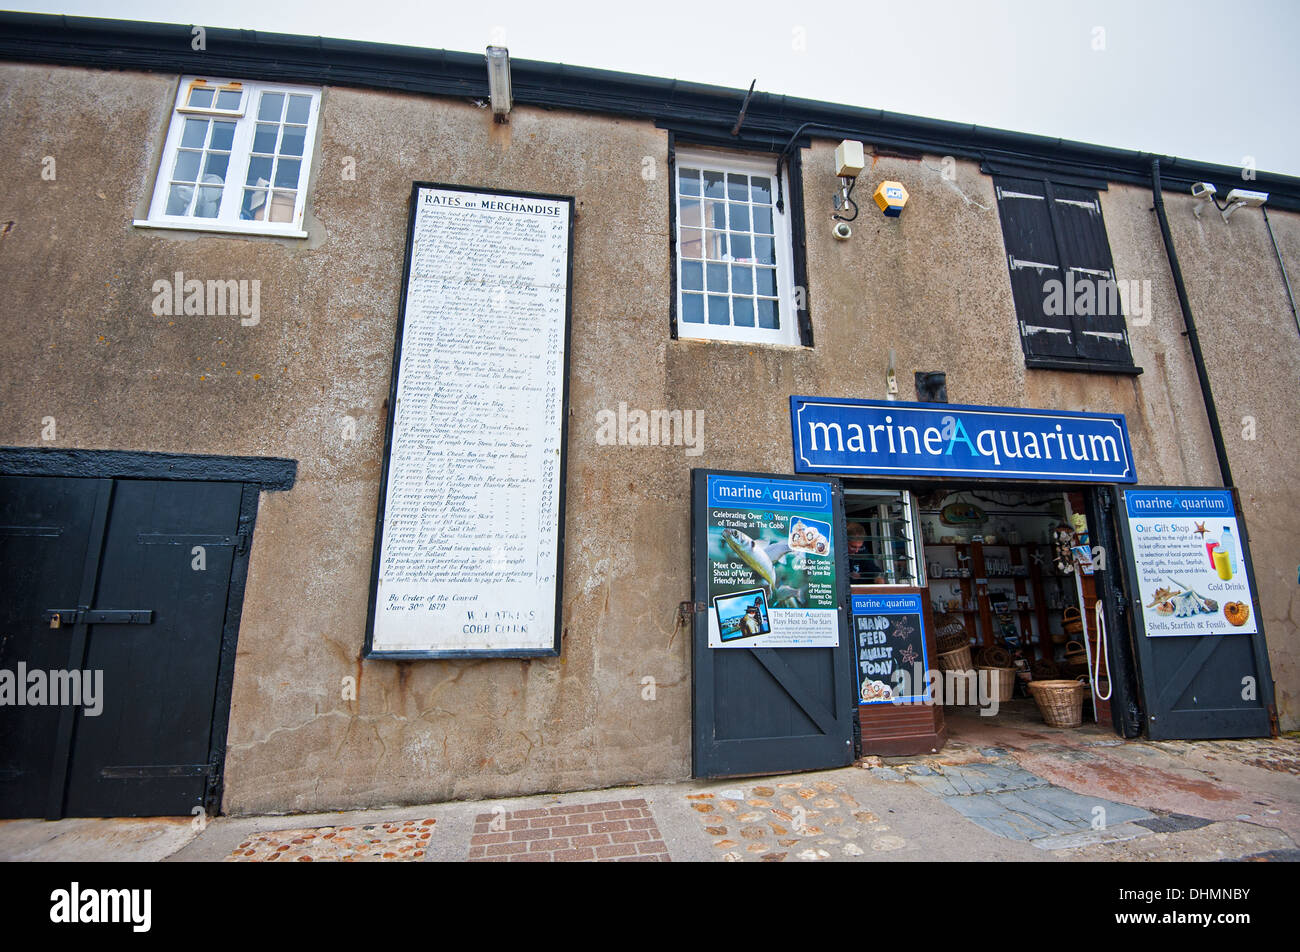 Rates on Merchandise sign on the wall of the Marine Aquarium in Lyme Regis - Stock Image